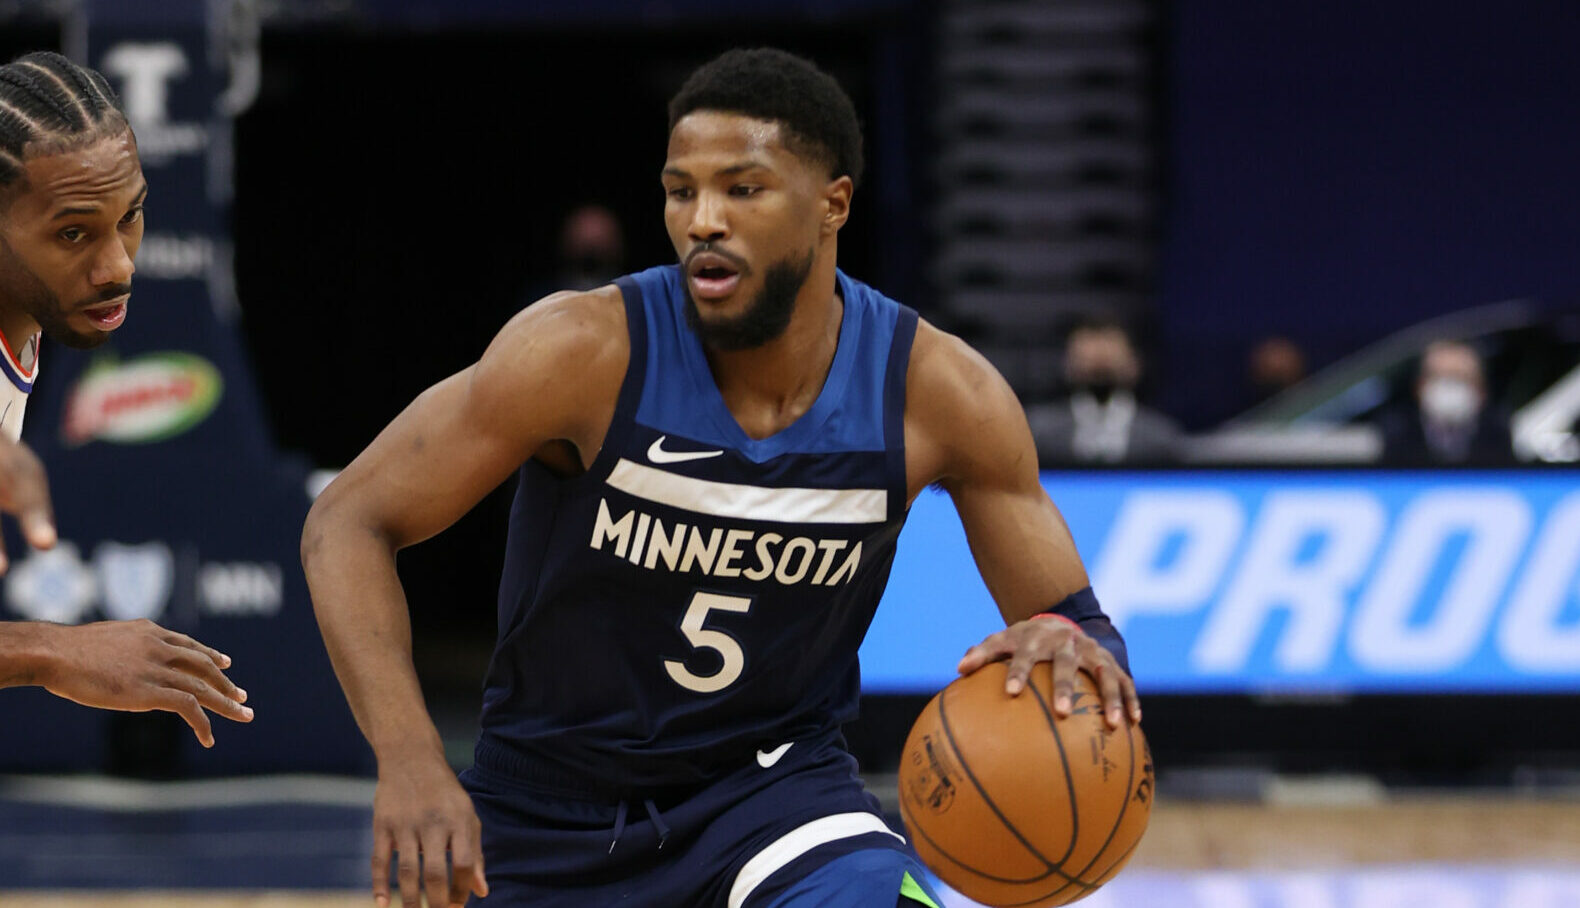 Timberwolves guard Malik Beasley suspended 12 games